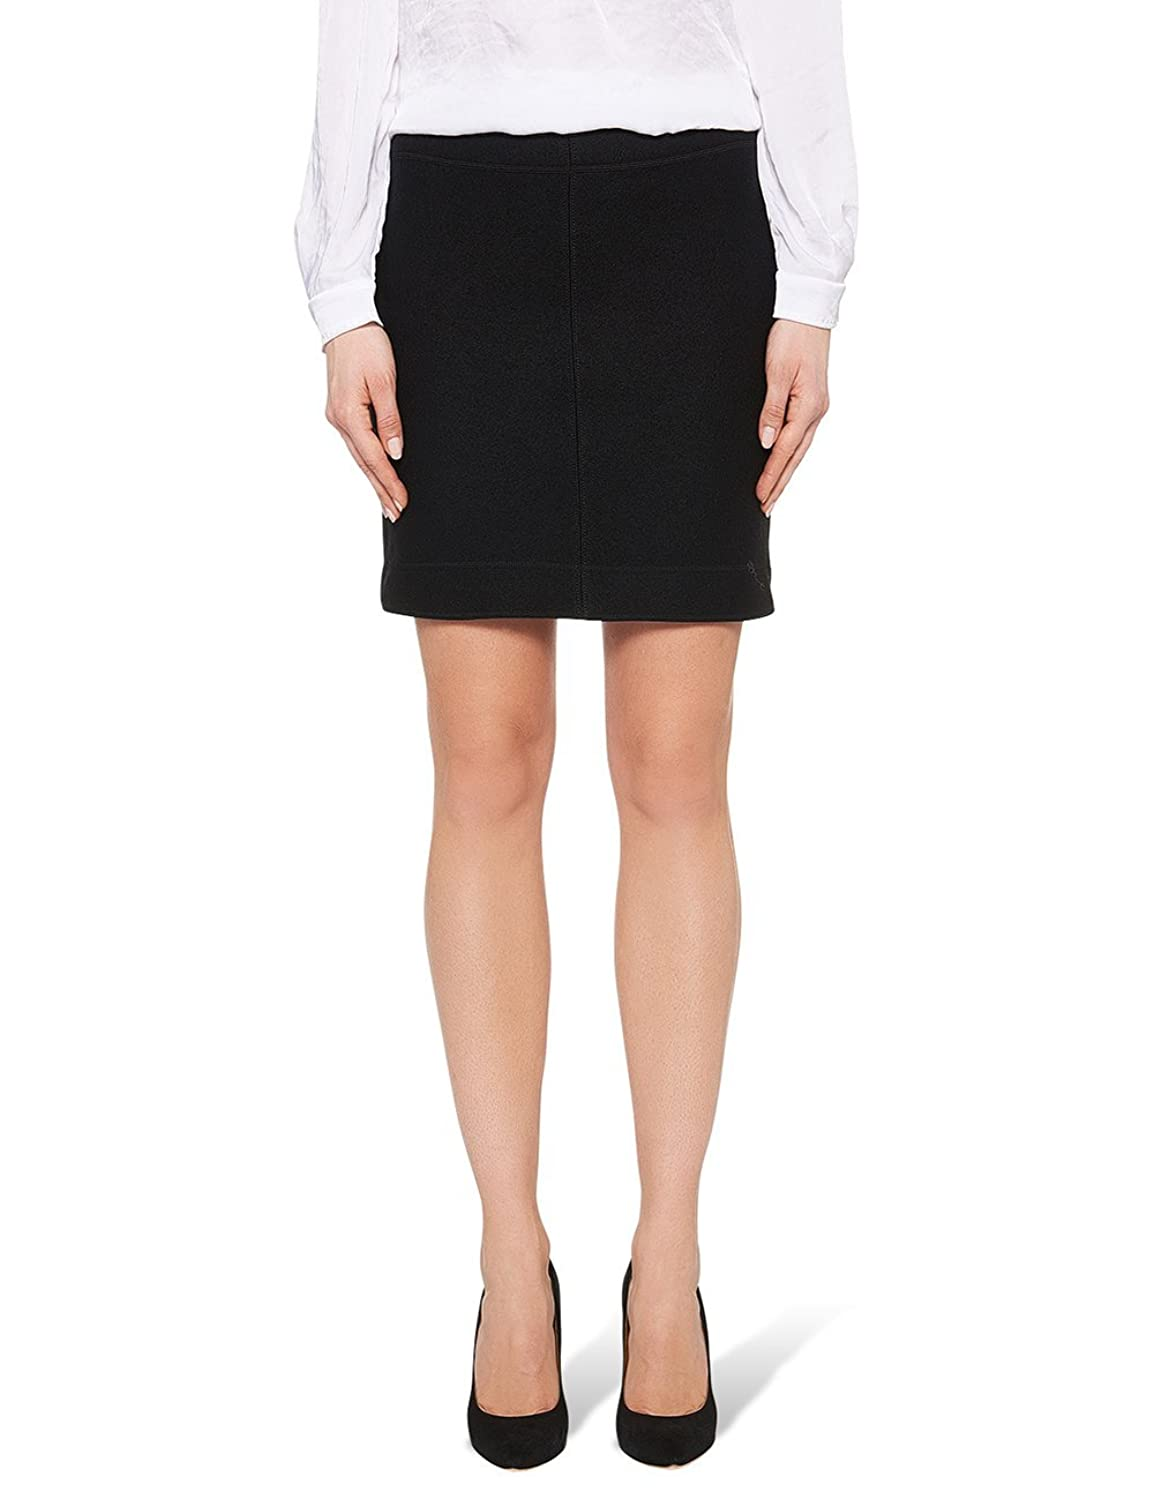 Marc Cain Essentials Women's +E 71.89 J30 Skirt